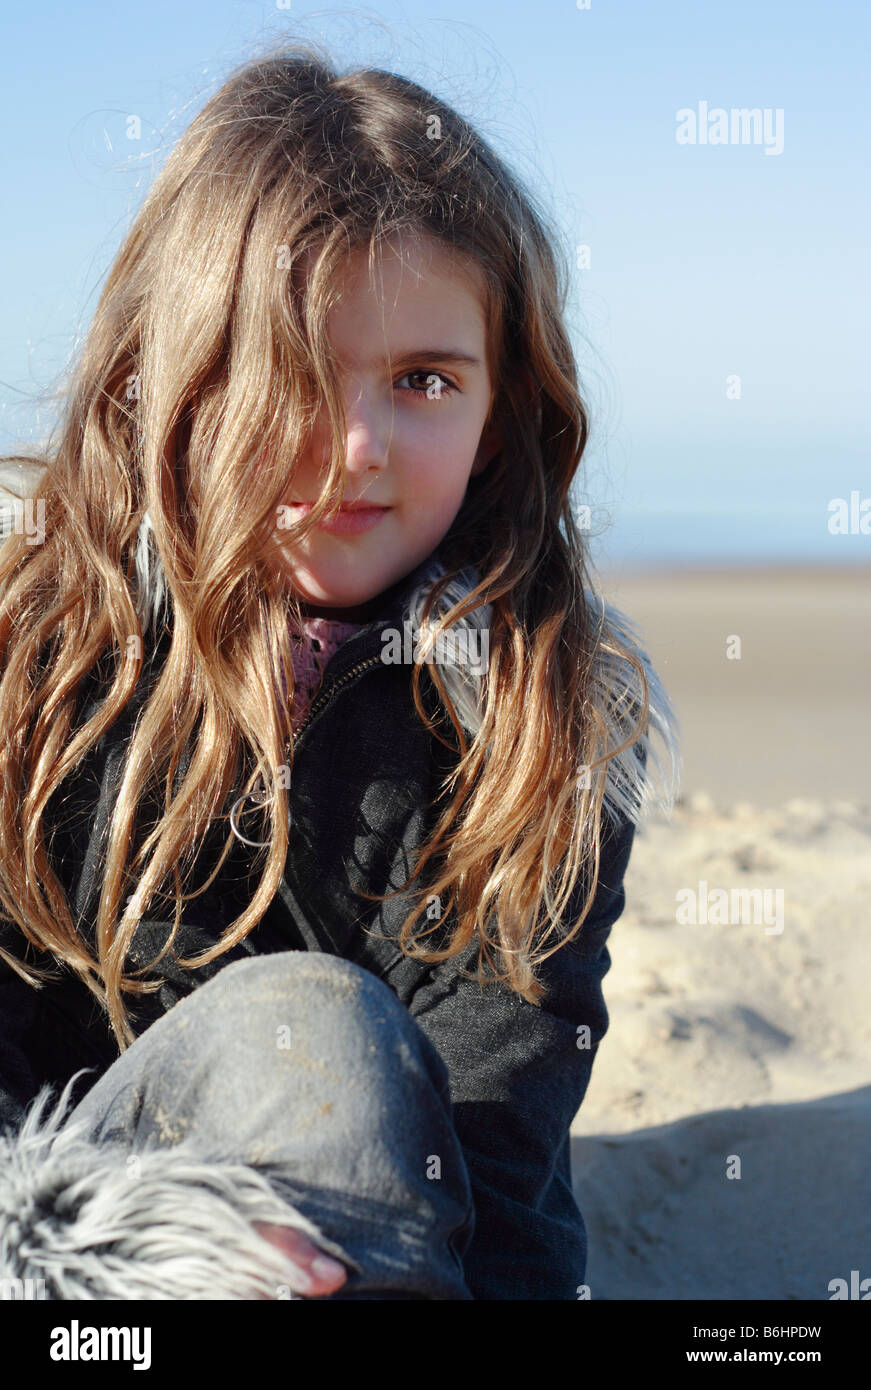 Outstanding Pretty Eight Year Old Girl At The Seaside Stock Photo Royalty Hairstyles For Men Maxibearus